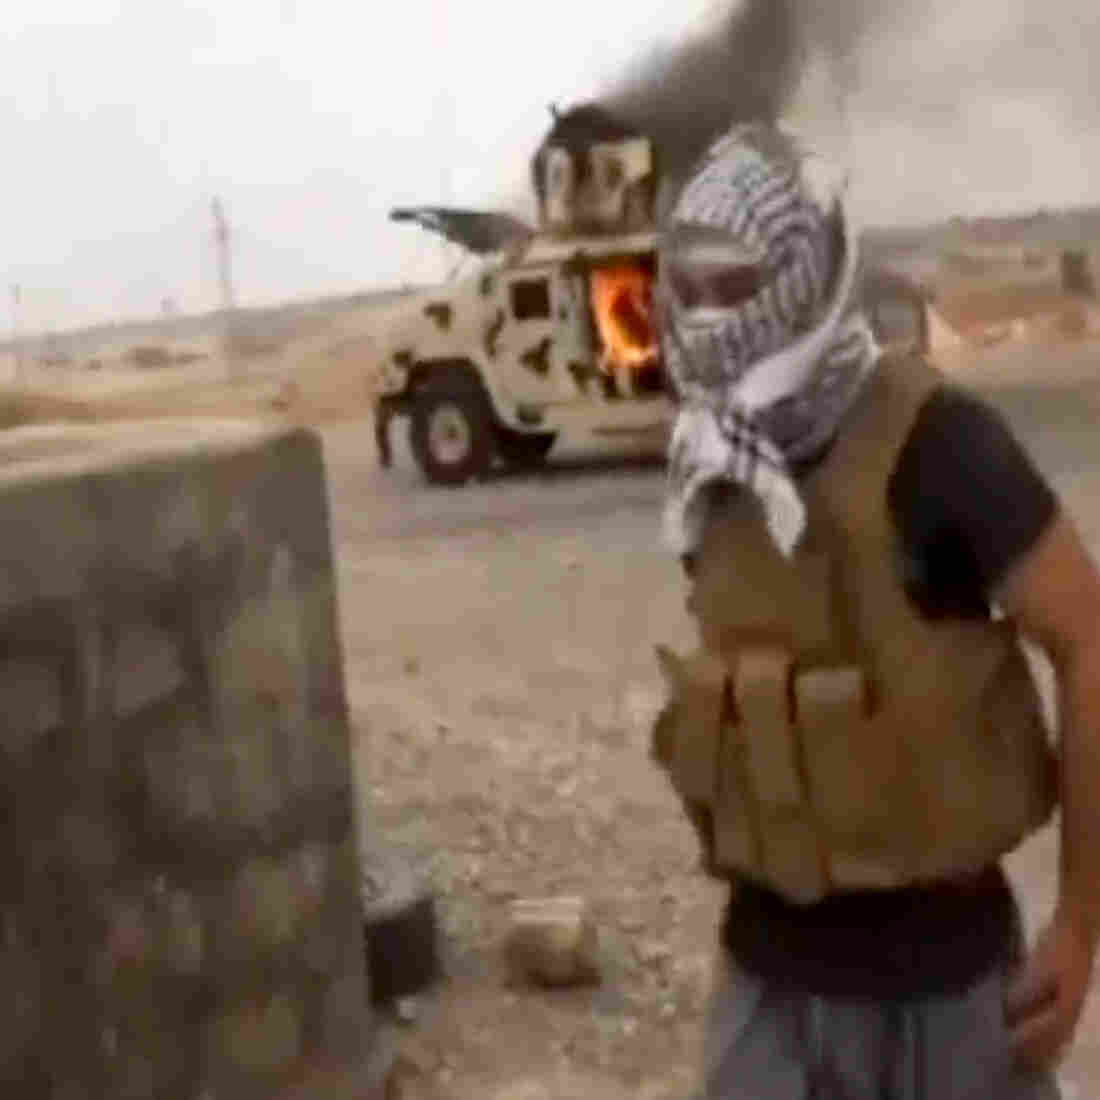 This video image posted last week by Iraqi0Revolution, a group supporting the Islamic State of Iraq and Syria, purportedly shows a militant standing in front of a burning Iraqi army vehicle in Tikrit, Iraq.